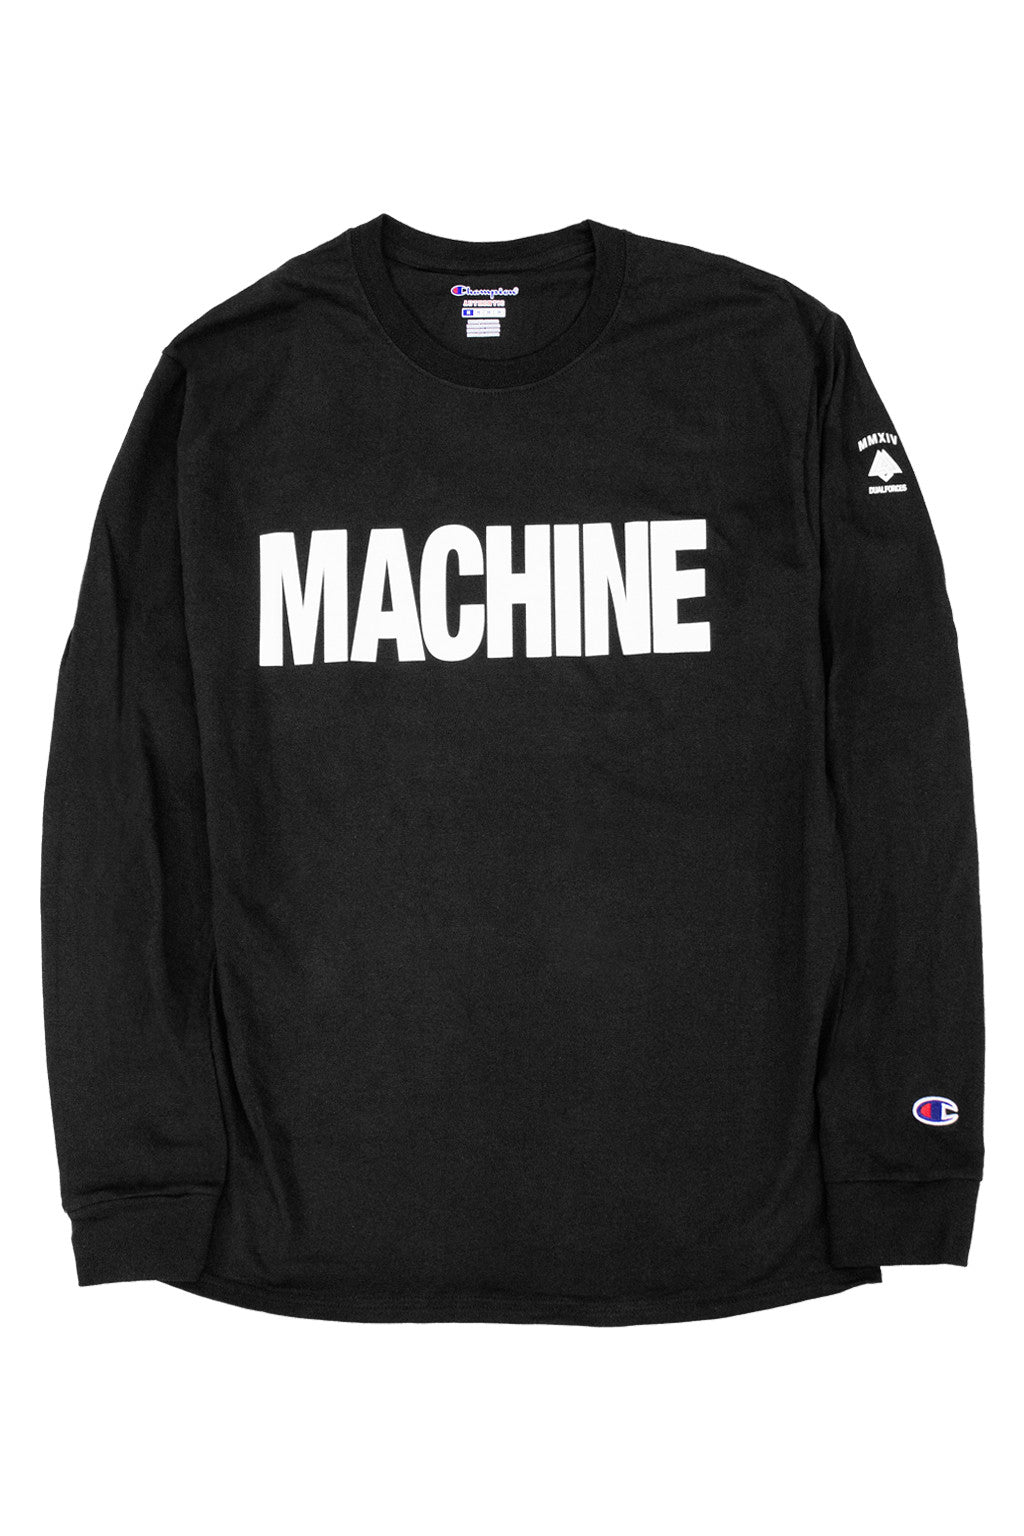 MACHINE Long Sleeve Shirt